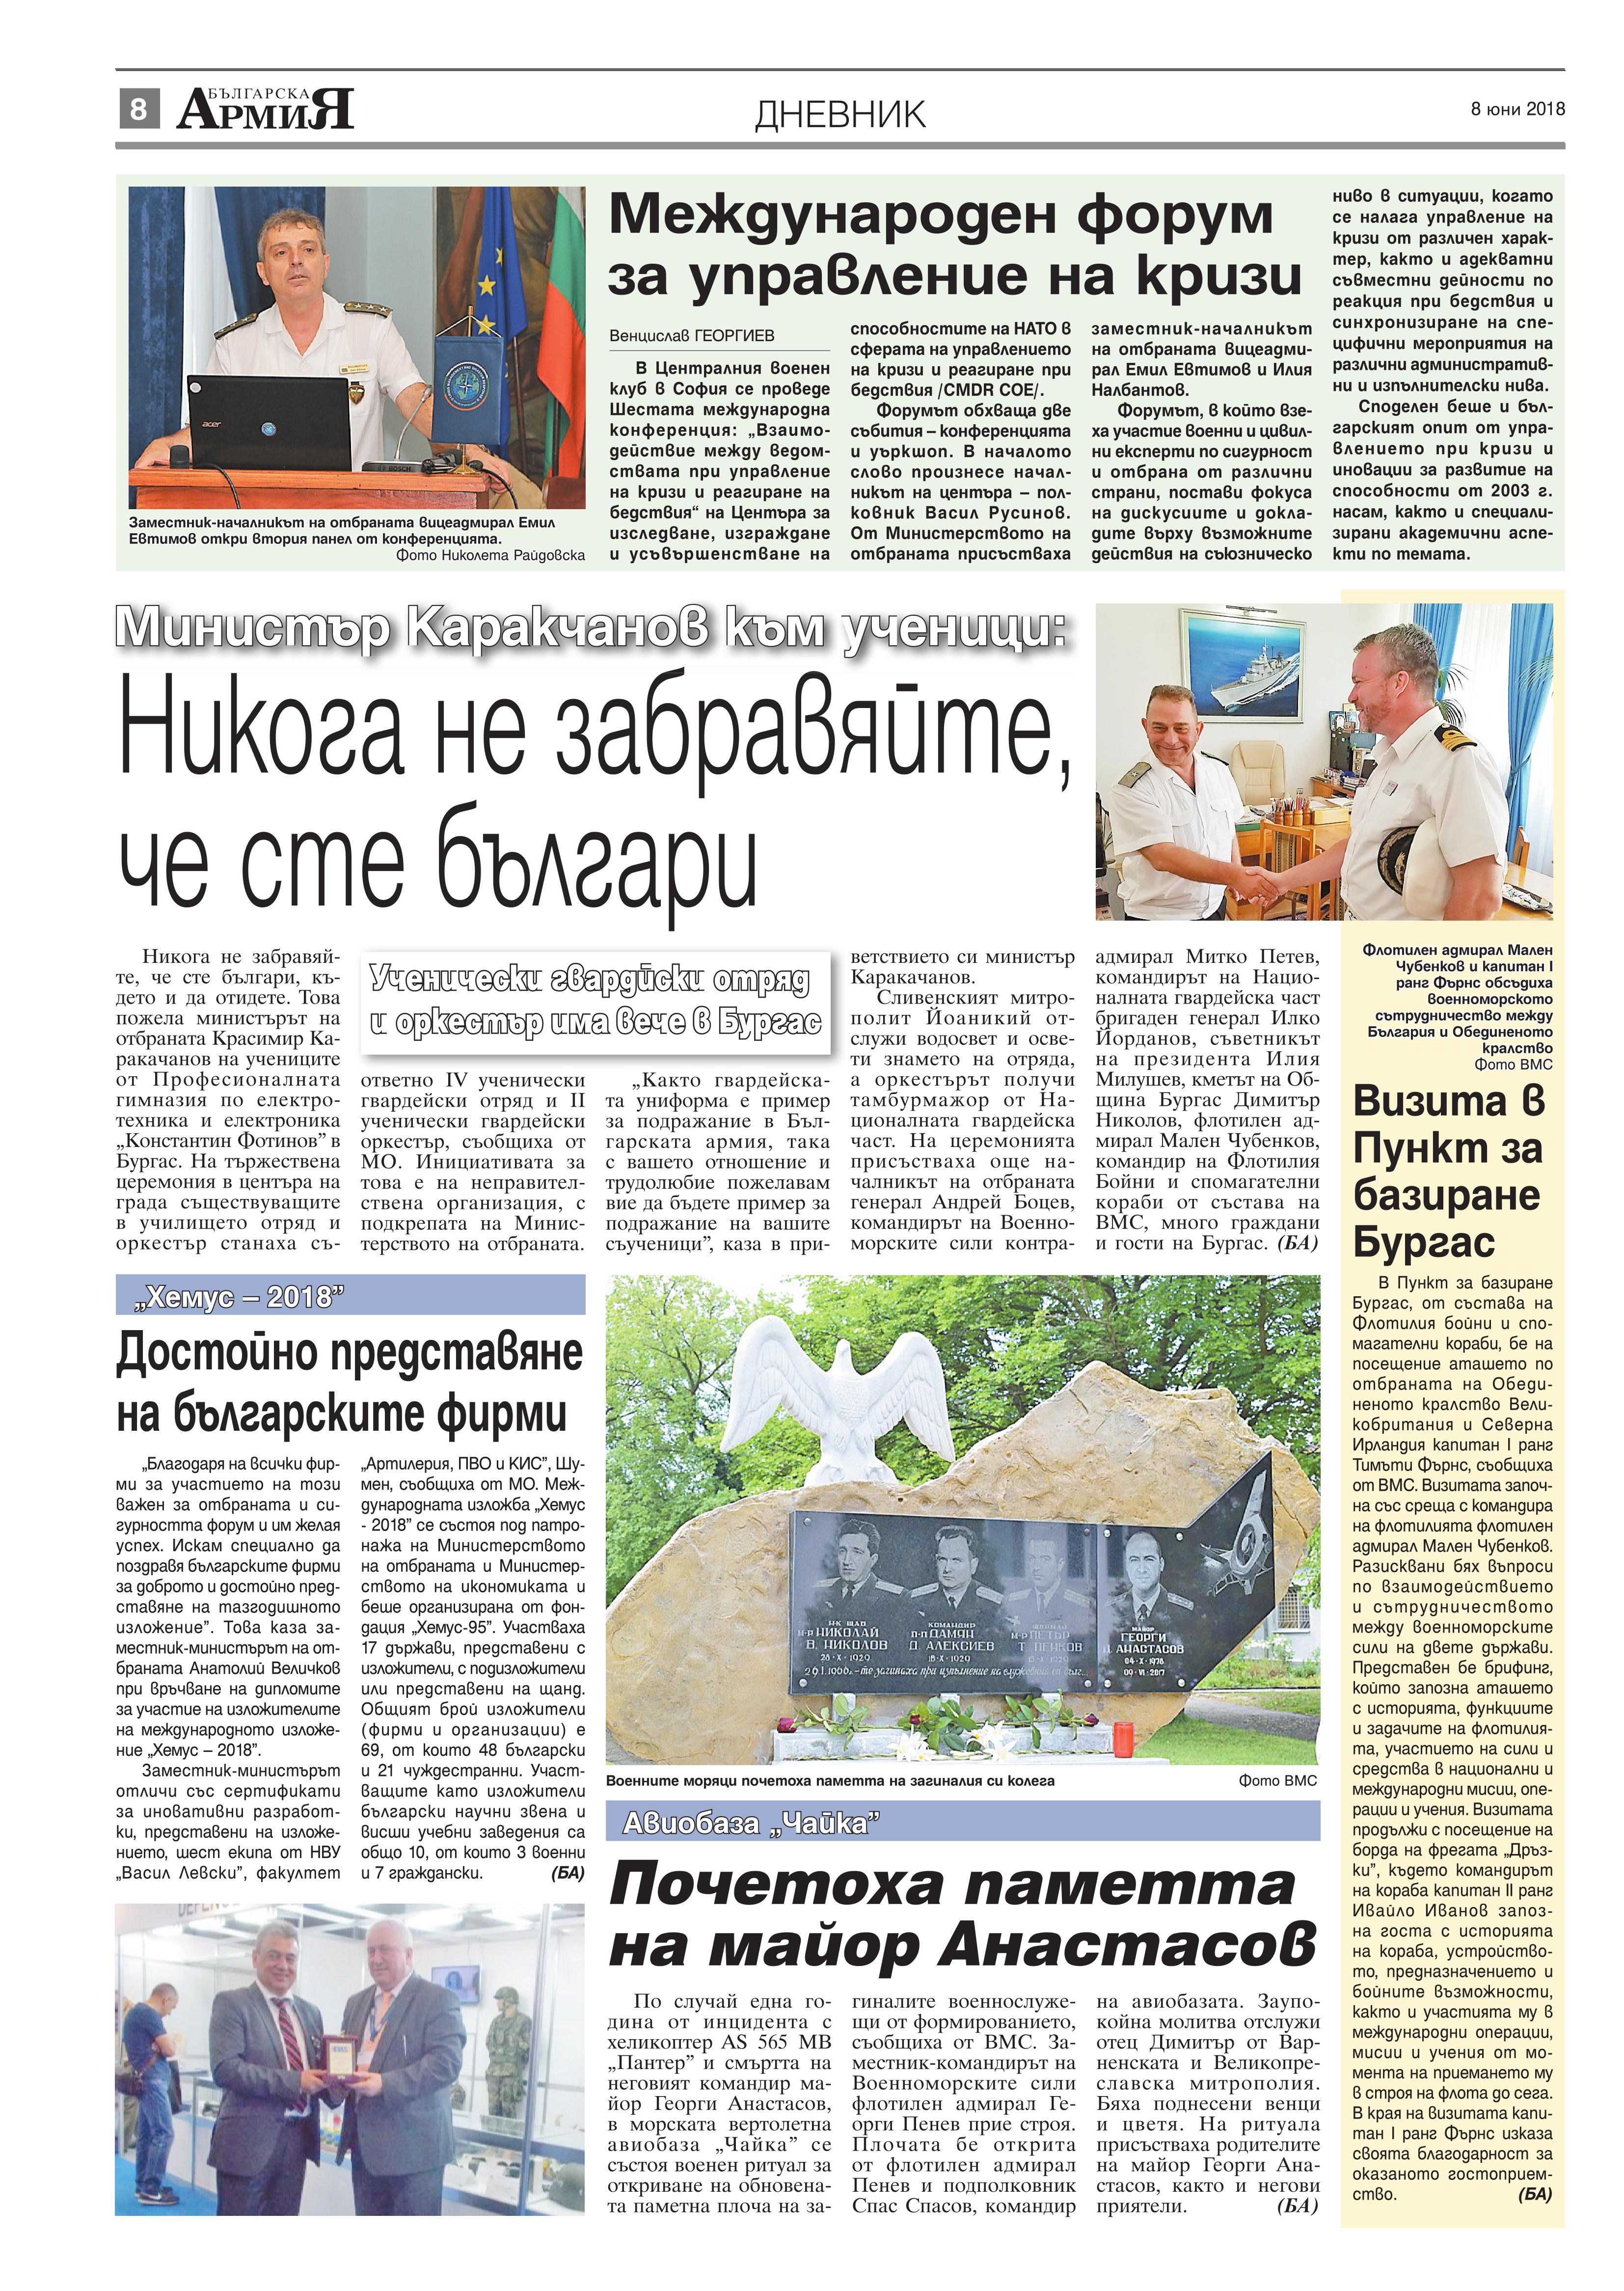 http://armymedia.bg/wp-content/uploads/2015/06/08.page1_-51.jpg